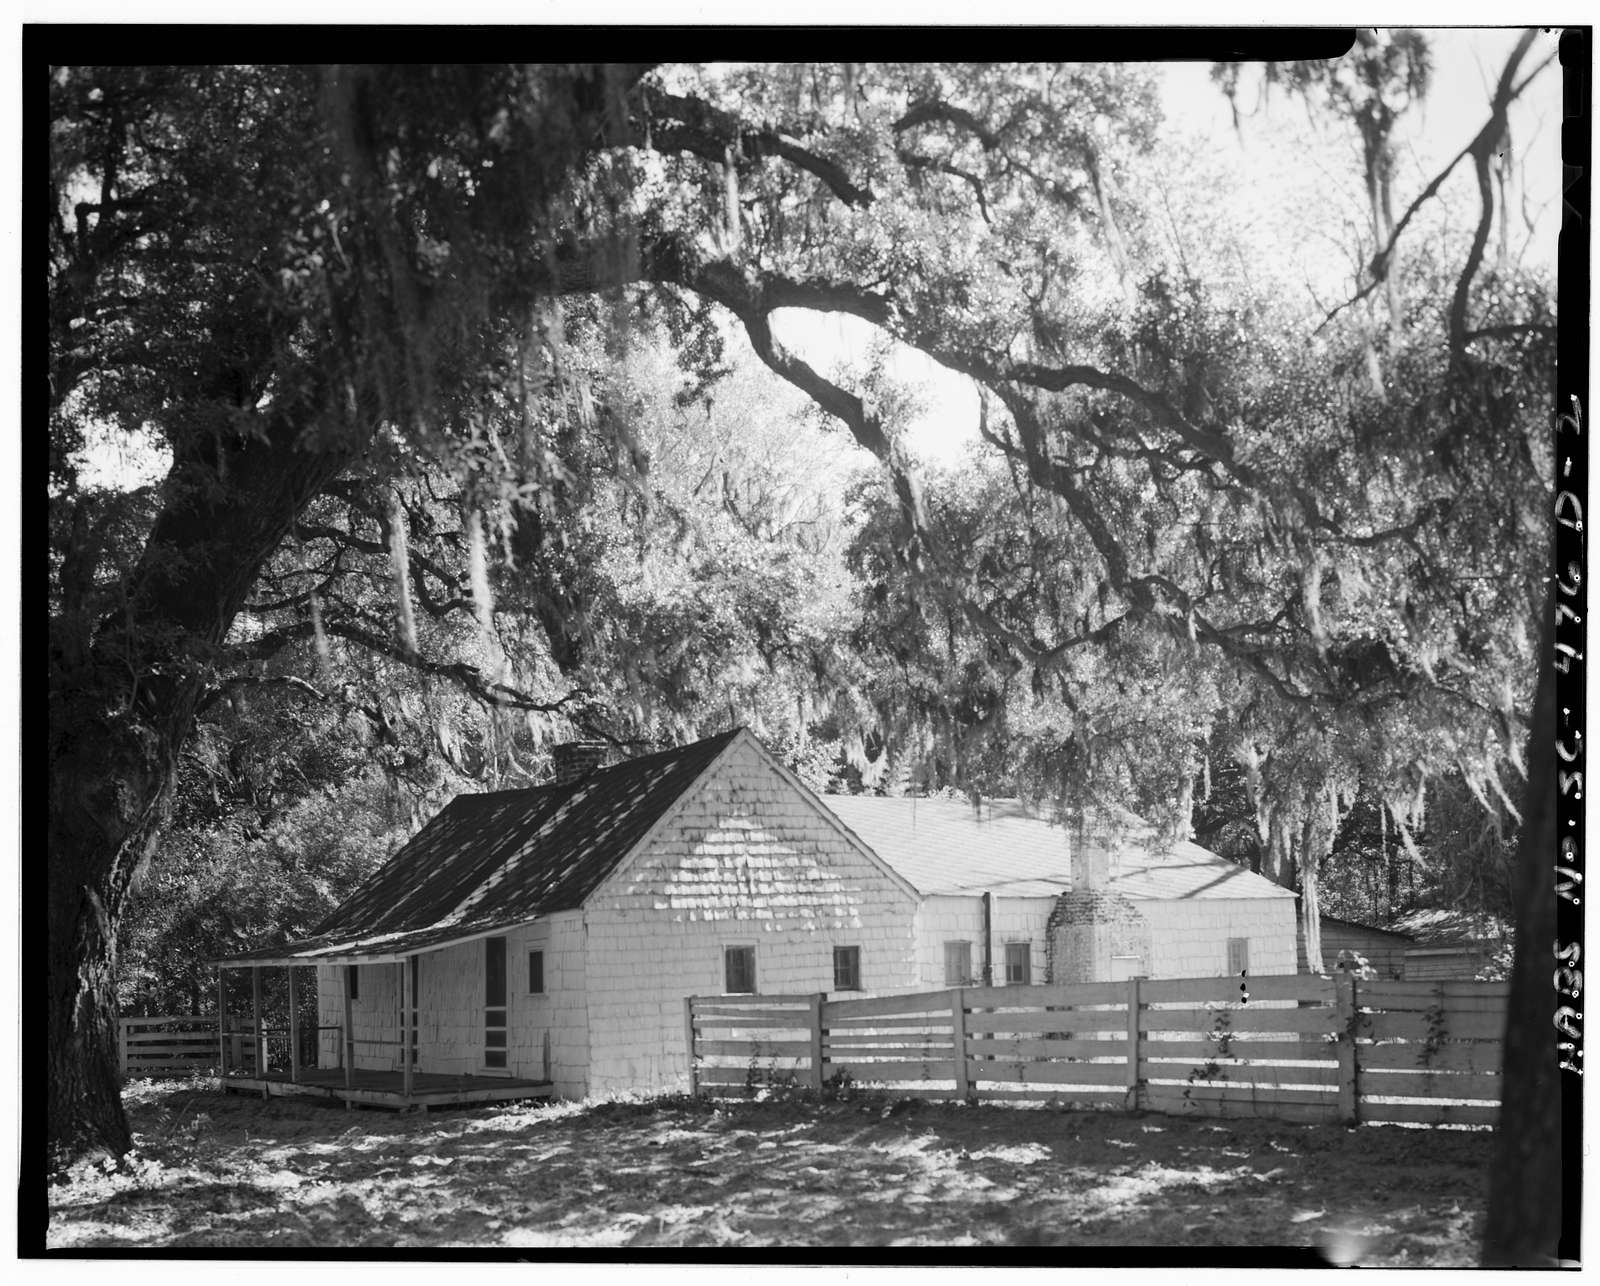 Mansfield Plantation, Slave Quarters, U.S. Route 701 vicinity, Georgetown, Georgetown County, SC